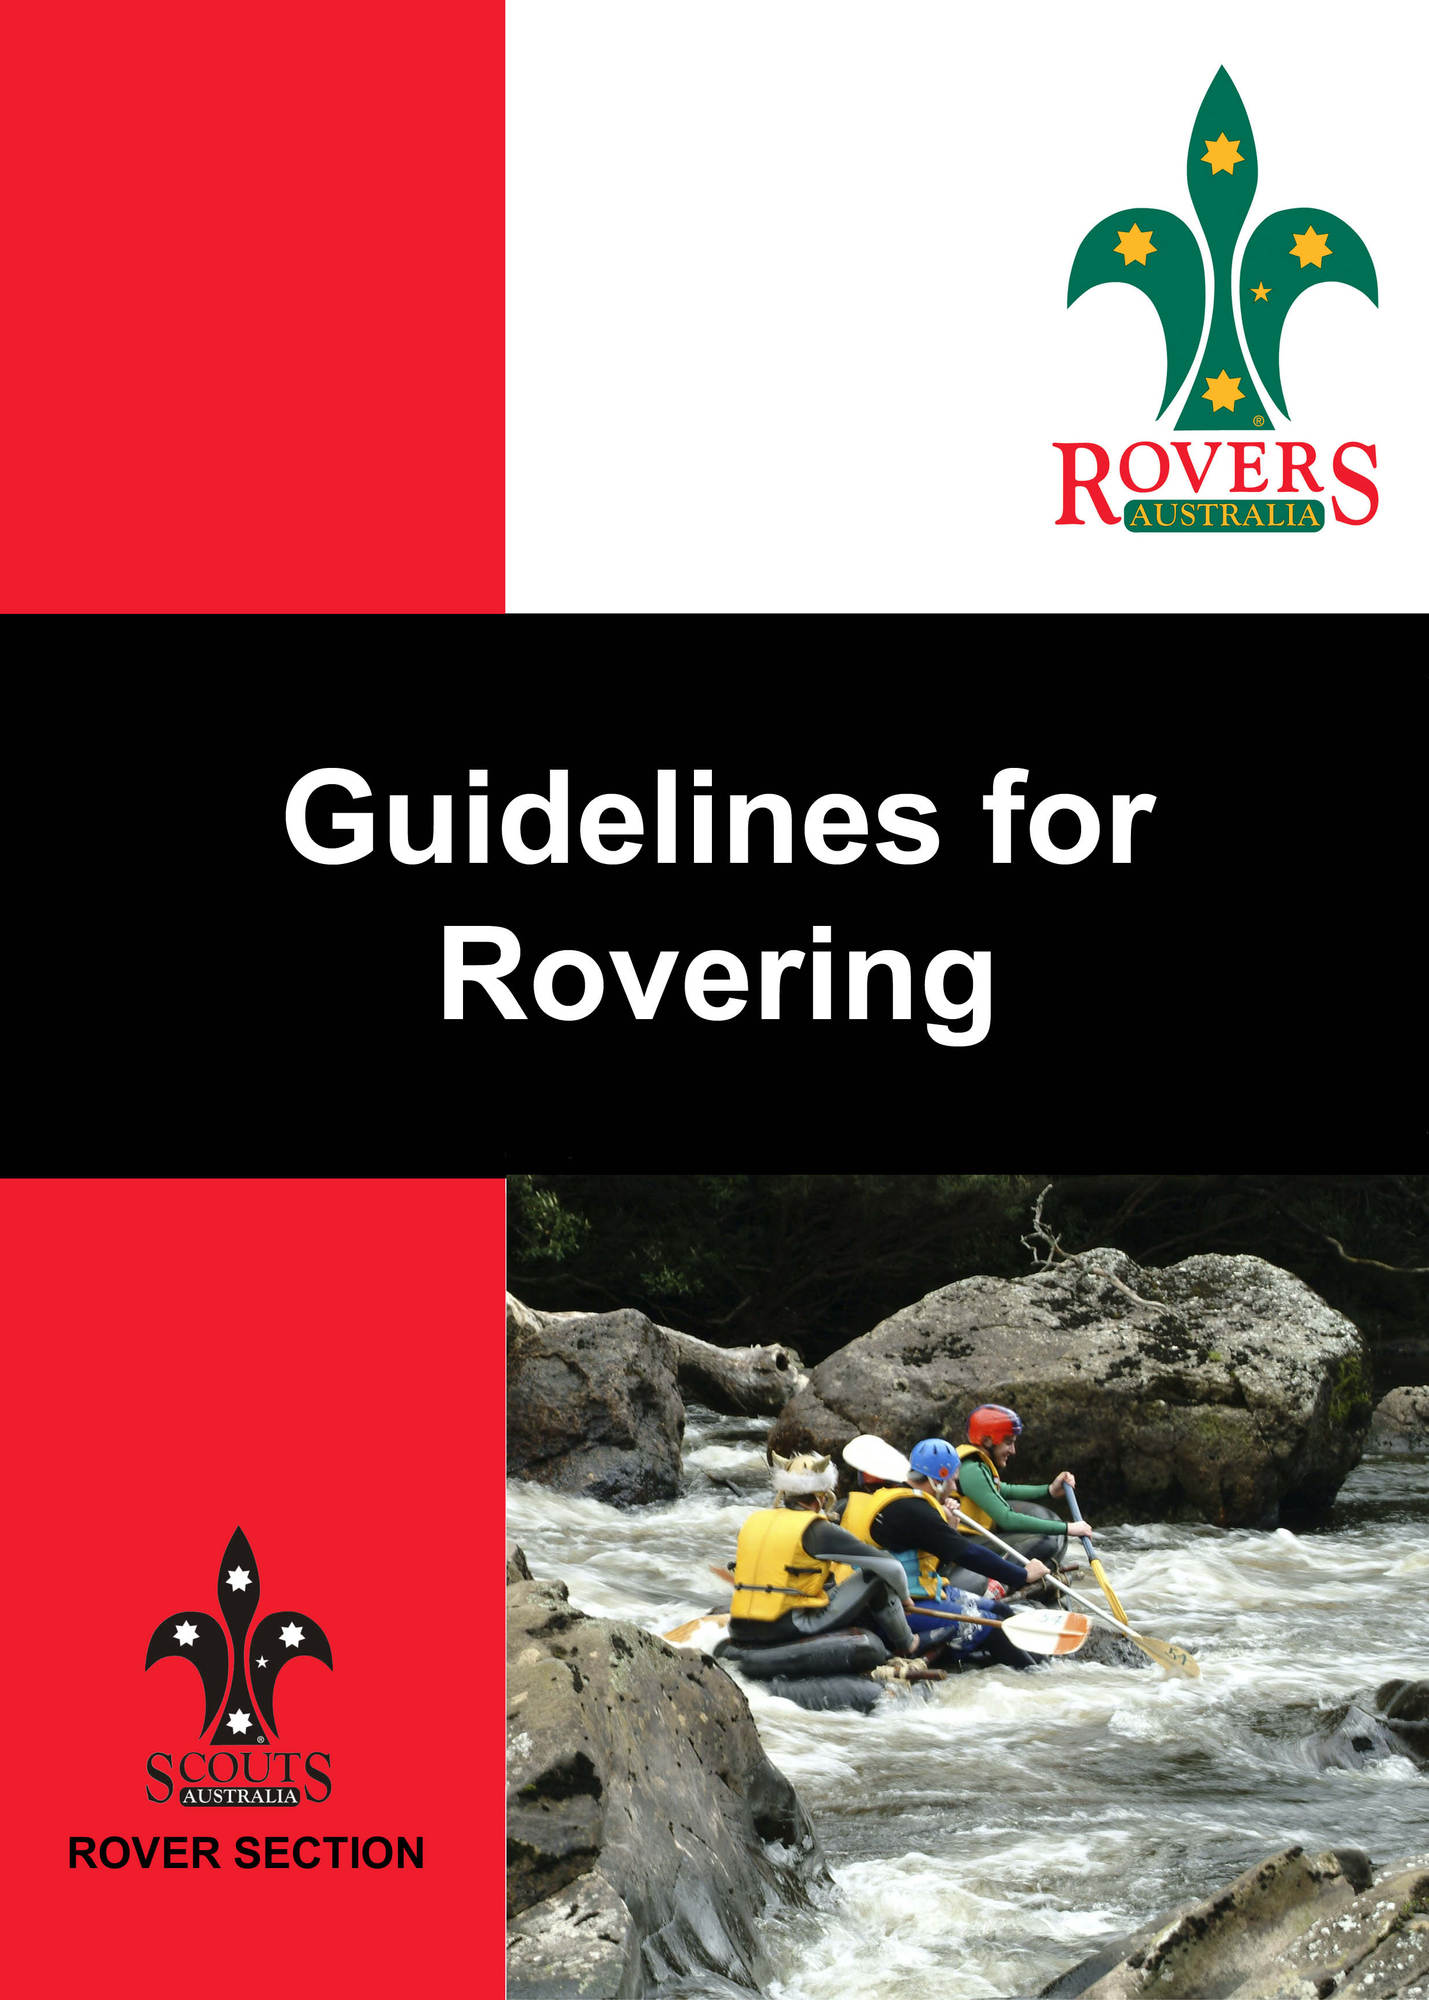 Guidelines for rovering